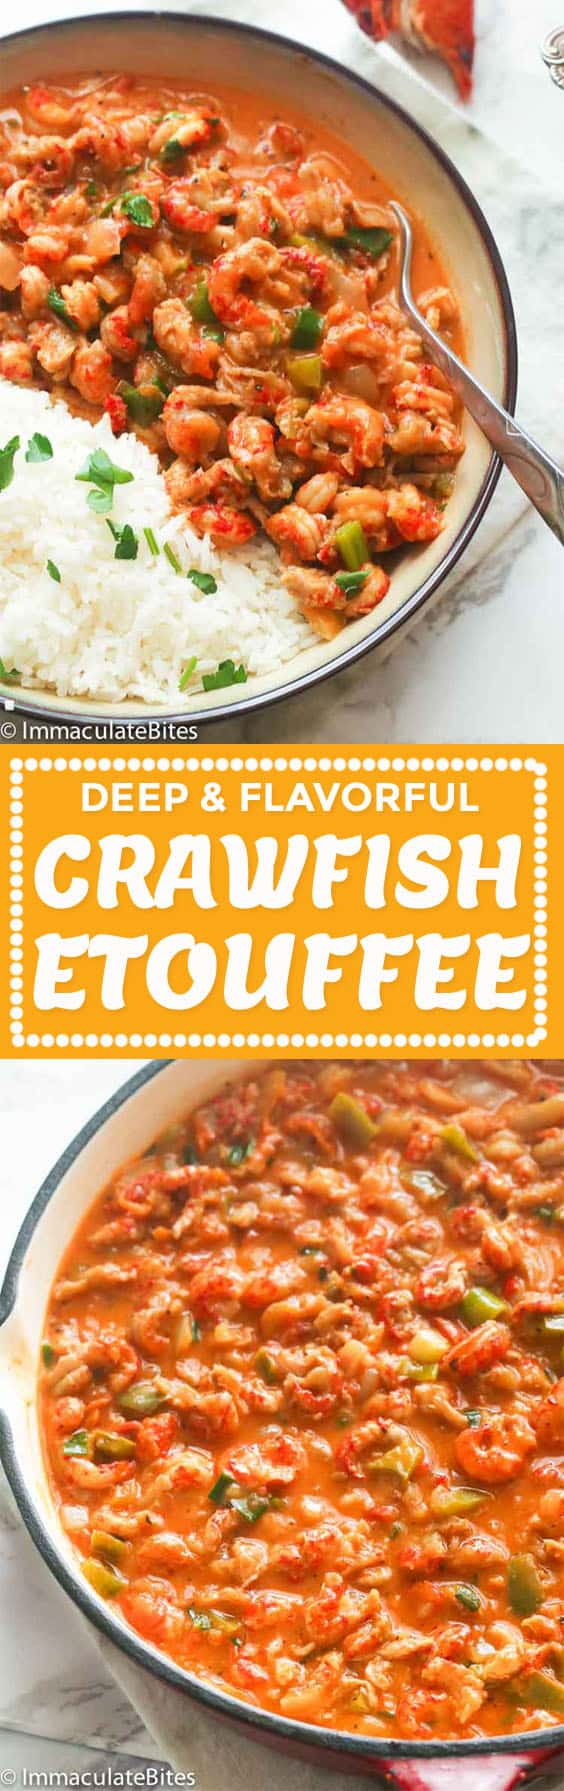 Crawfish Etouffee Immaculate Bites